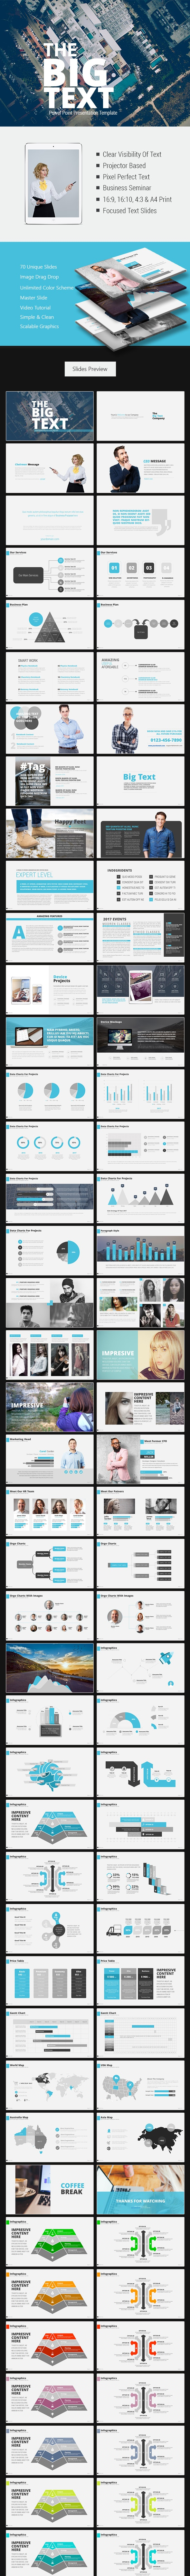 The Big Text Power Point Presentation - Business PowerPoint Templates